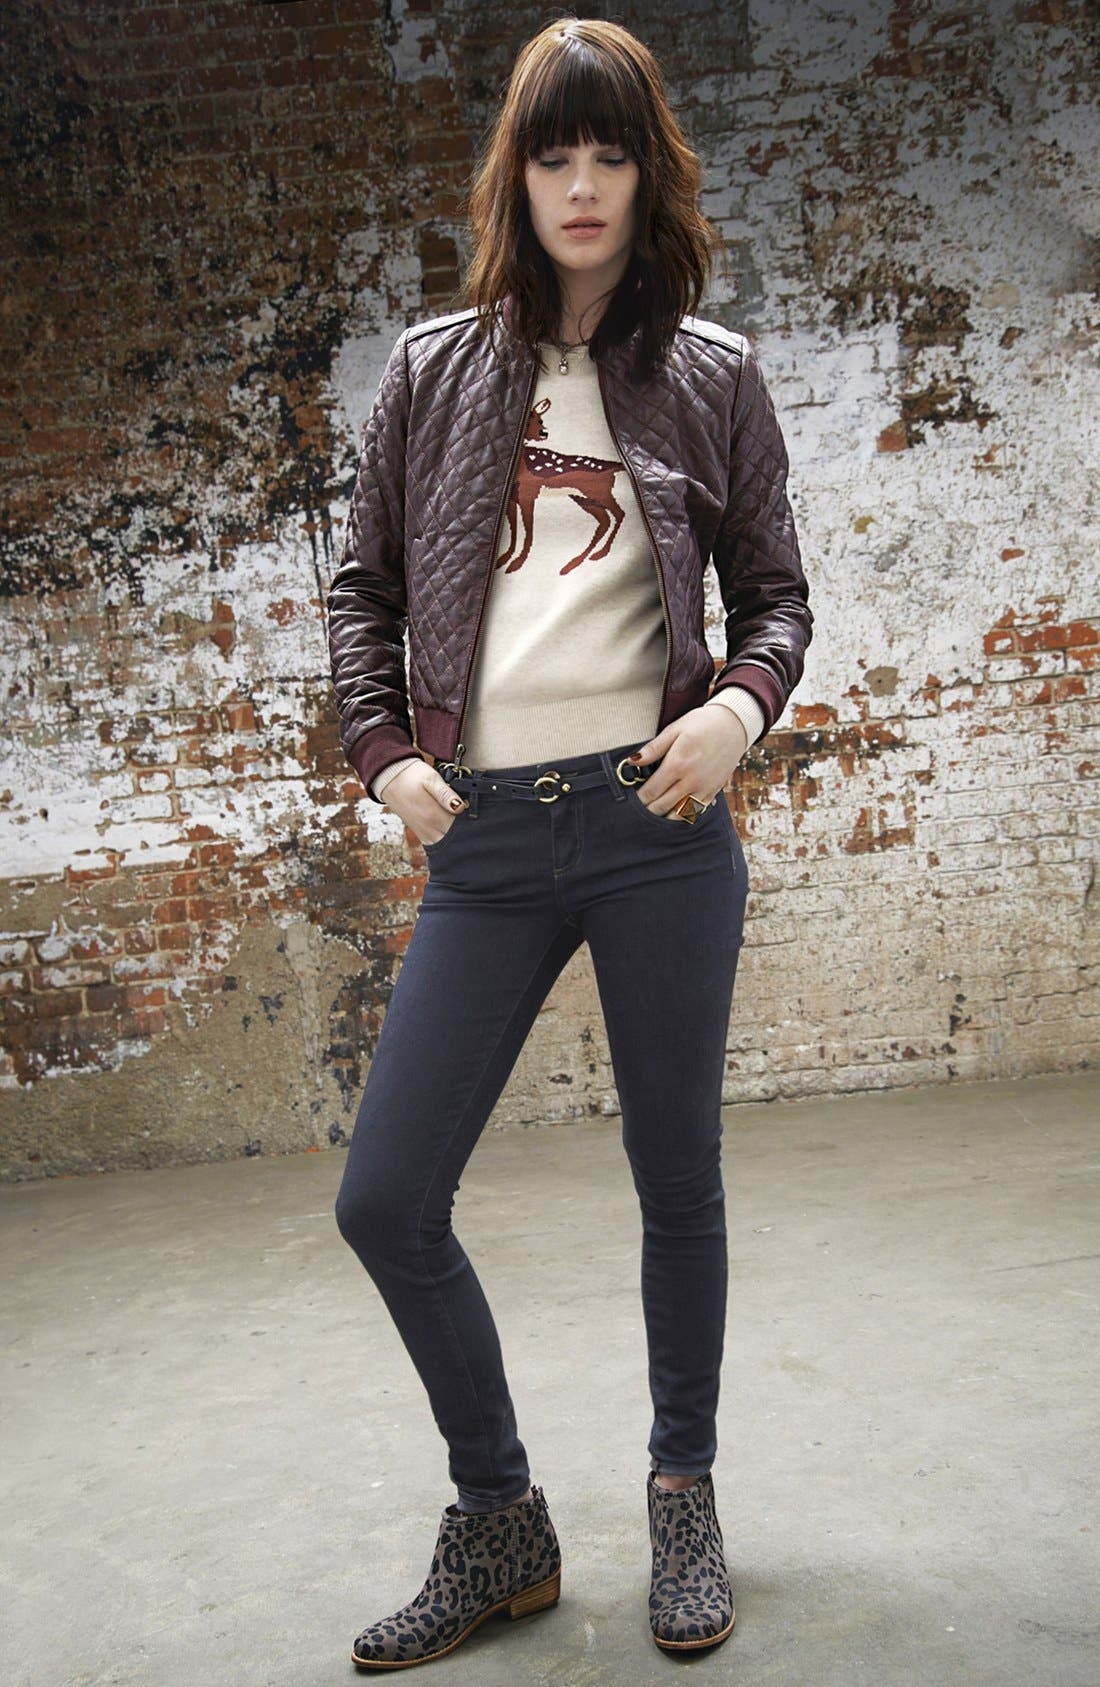 Alternate Image 1 Selected - Halogen® Leather Bomber Jacket, Sweater & KUT from the Kloth Jeans